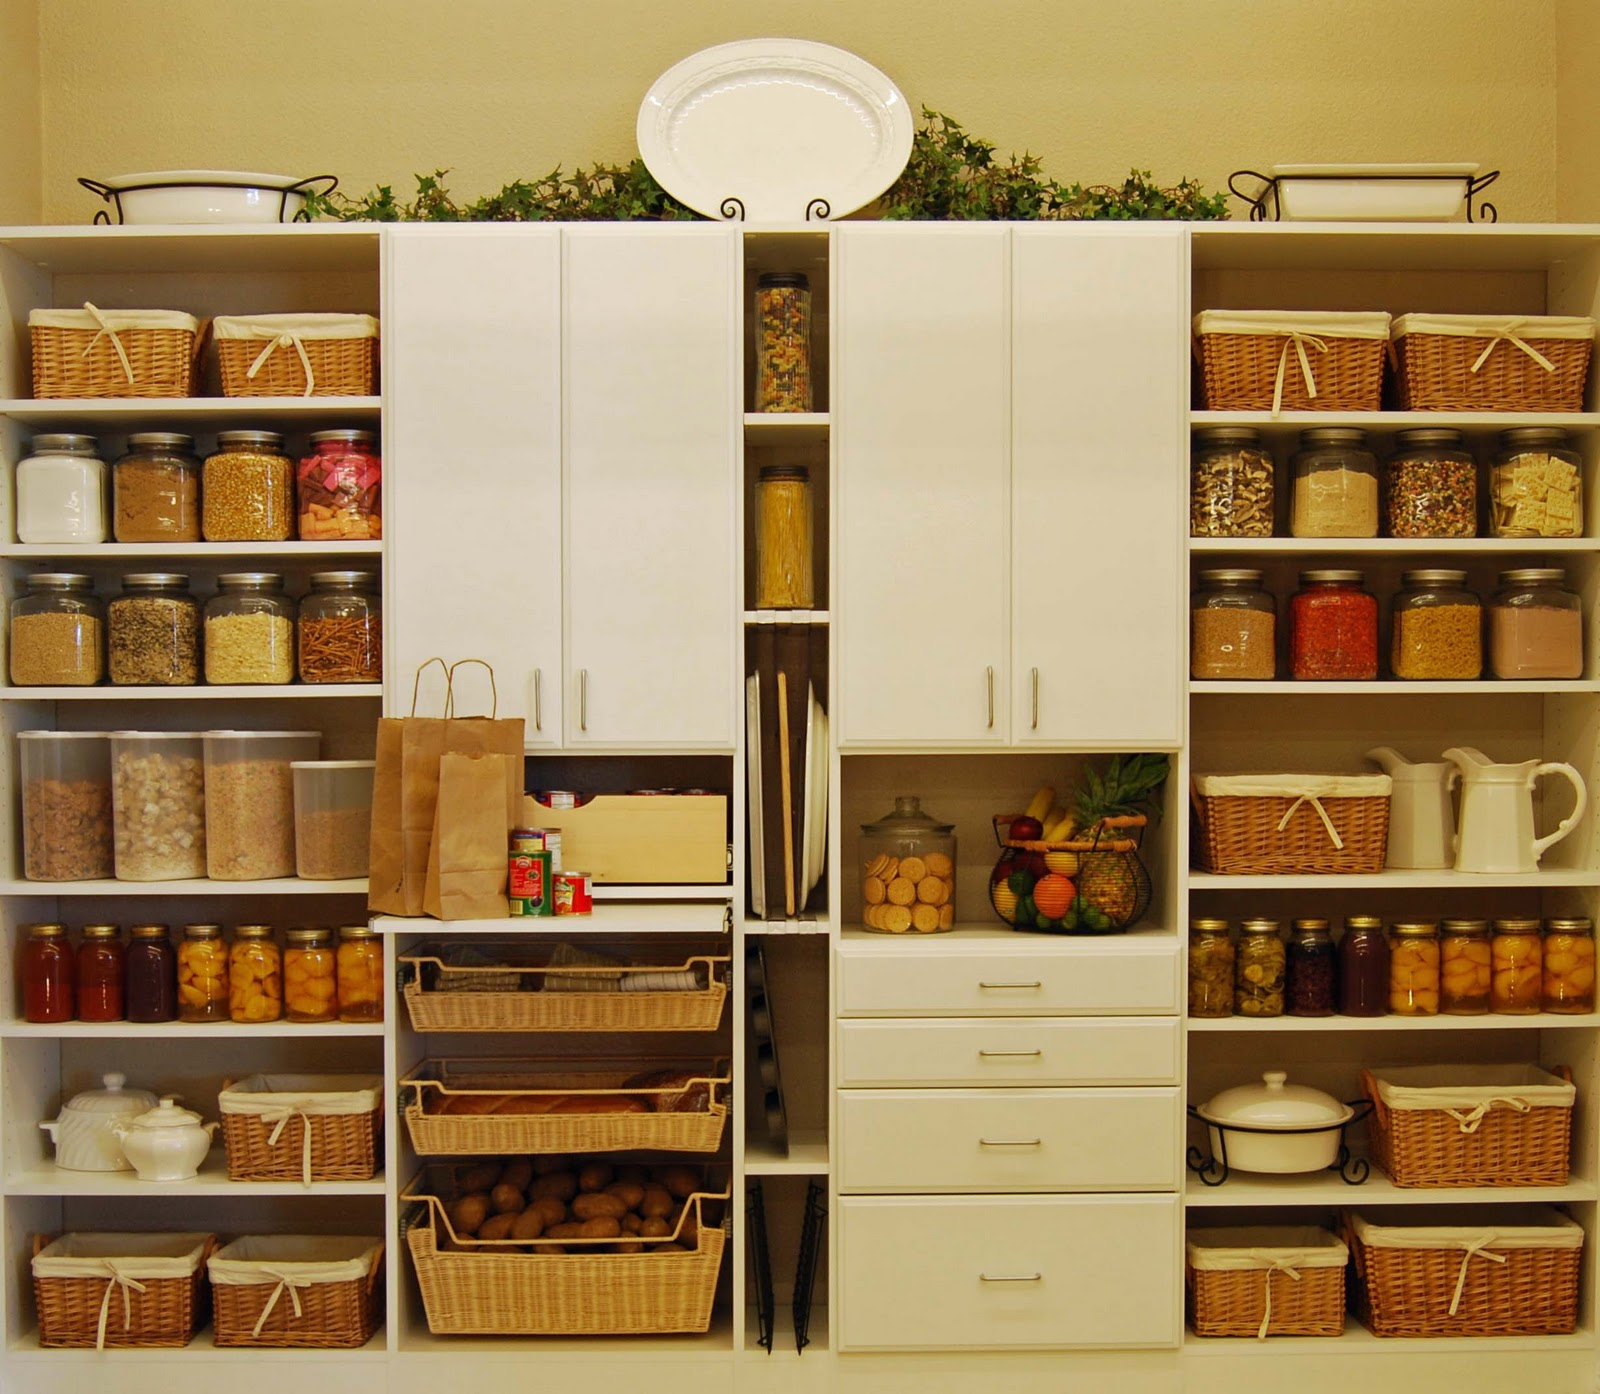 pantry-room-simple-and-functional-design